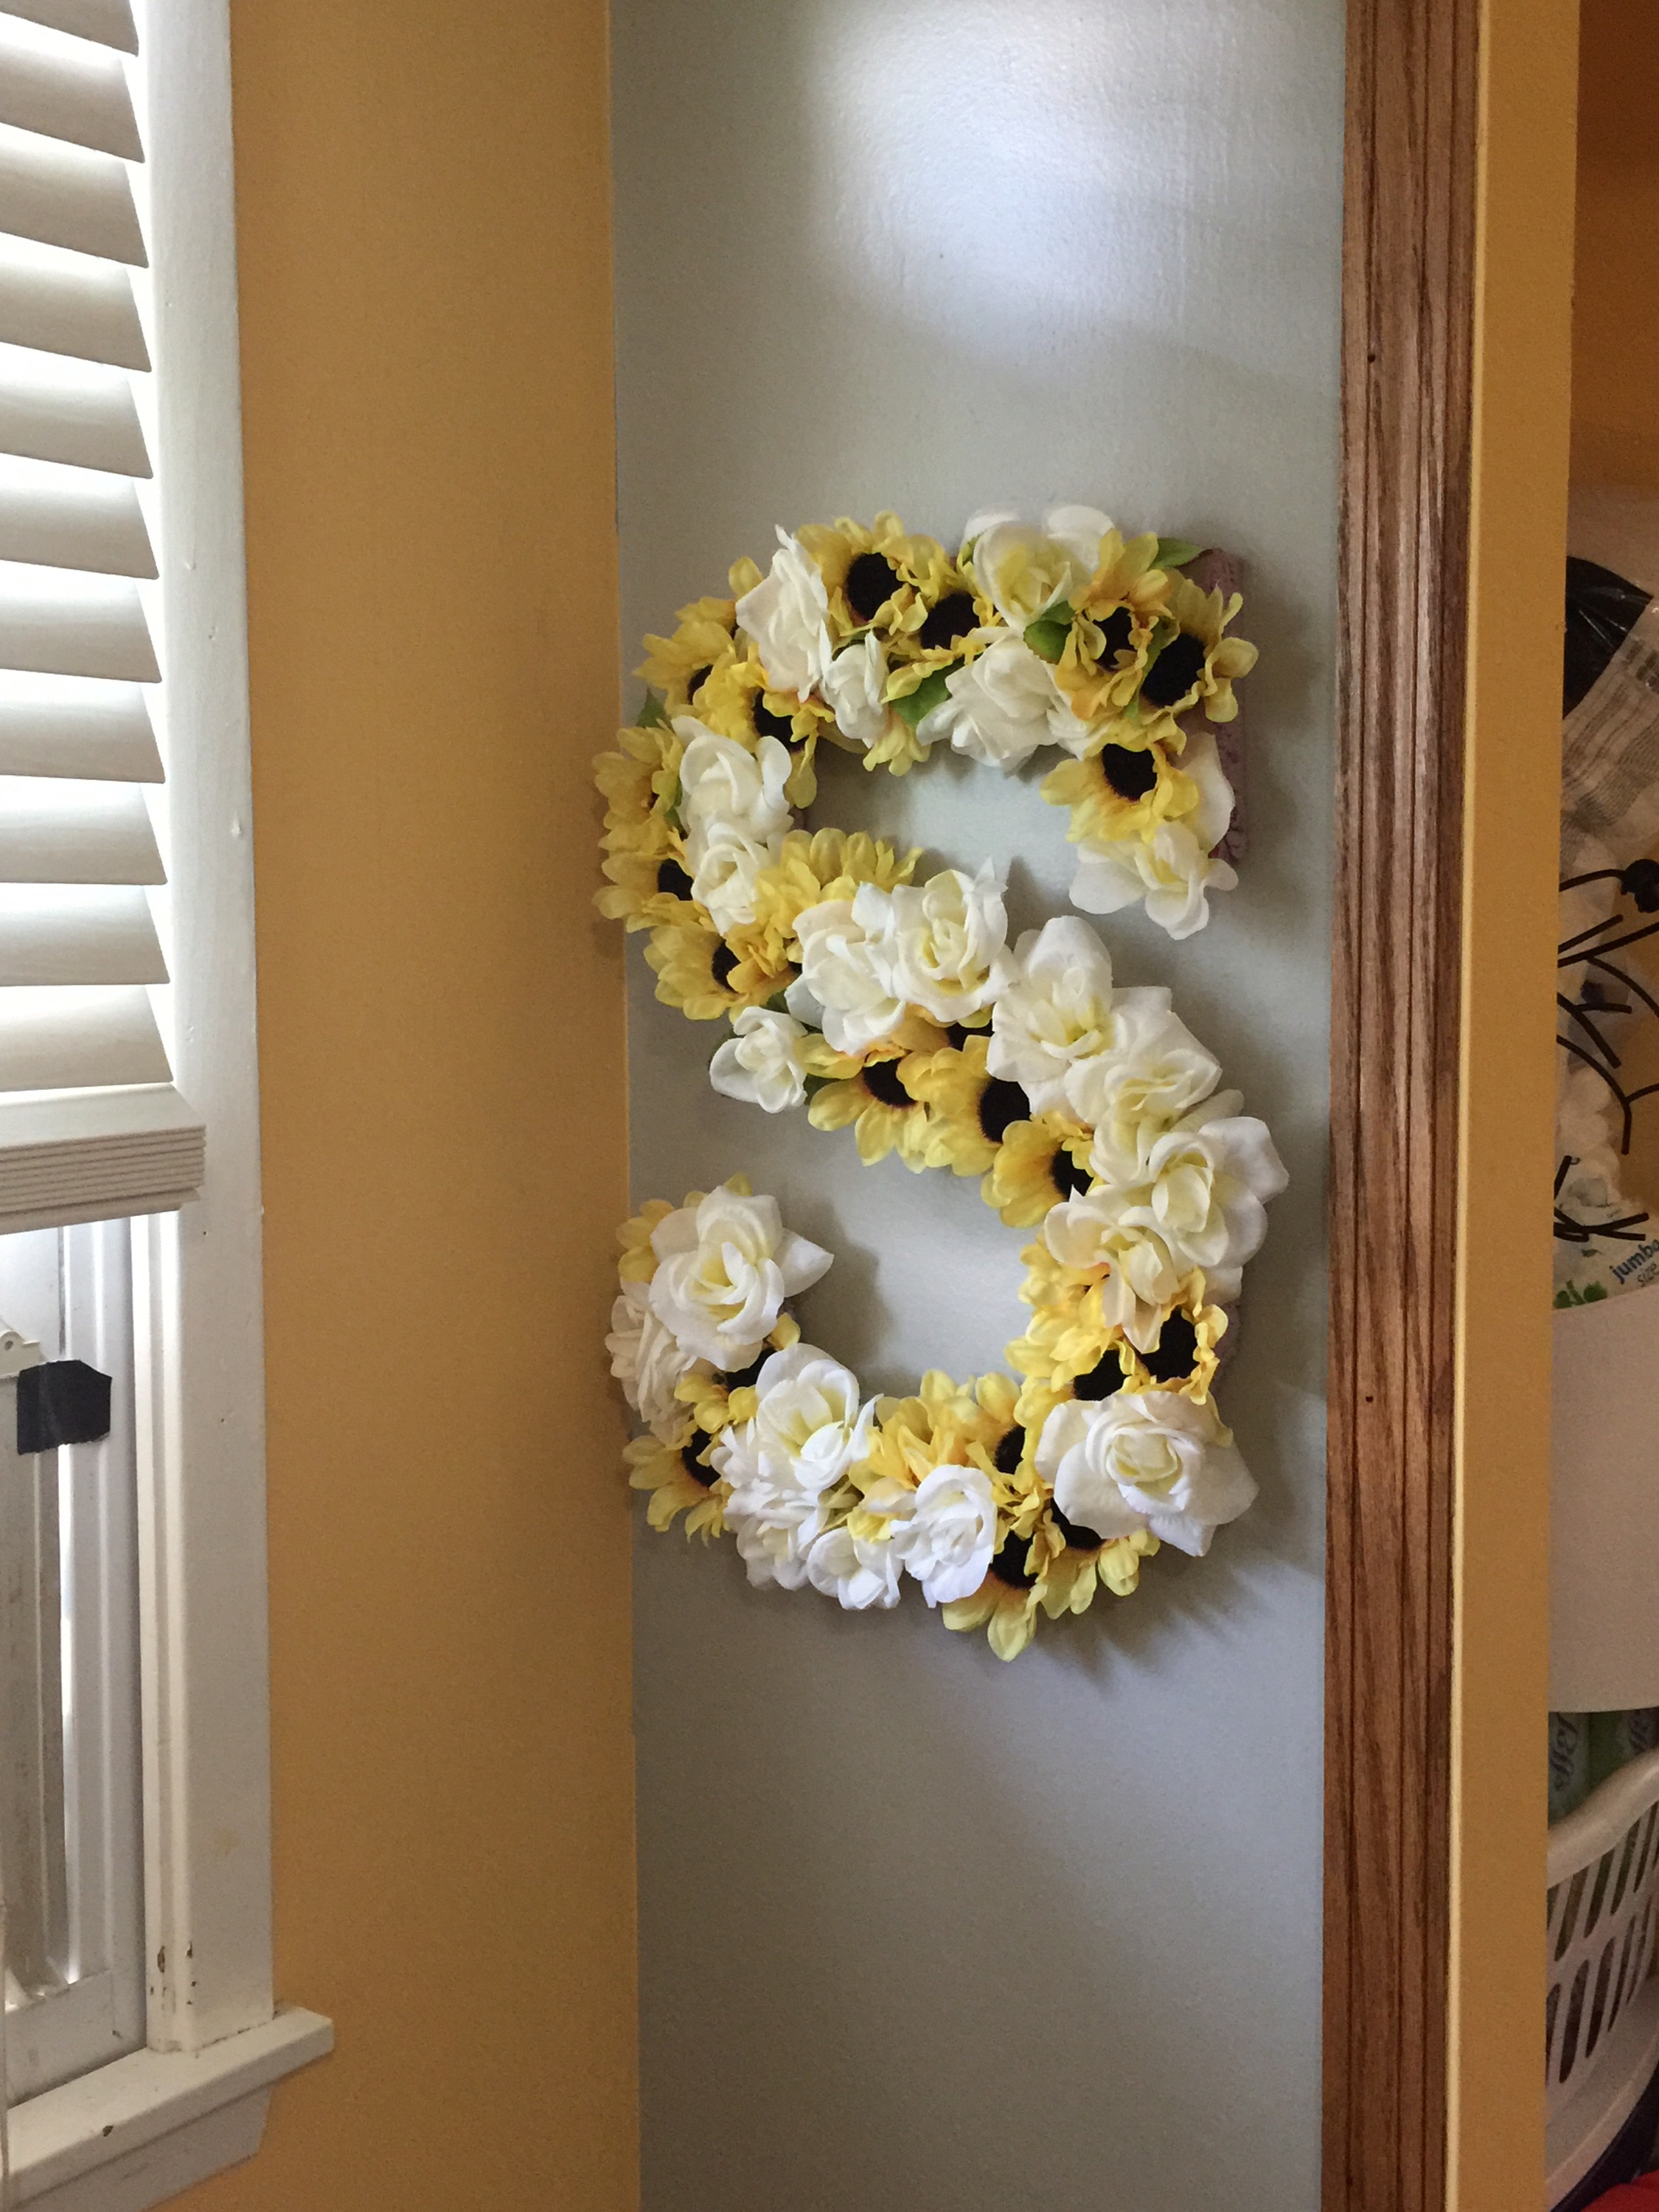 three simple steps and about one hour of my time and my cute diy floral letter was hanging on my wall let me know what you think and comment your